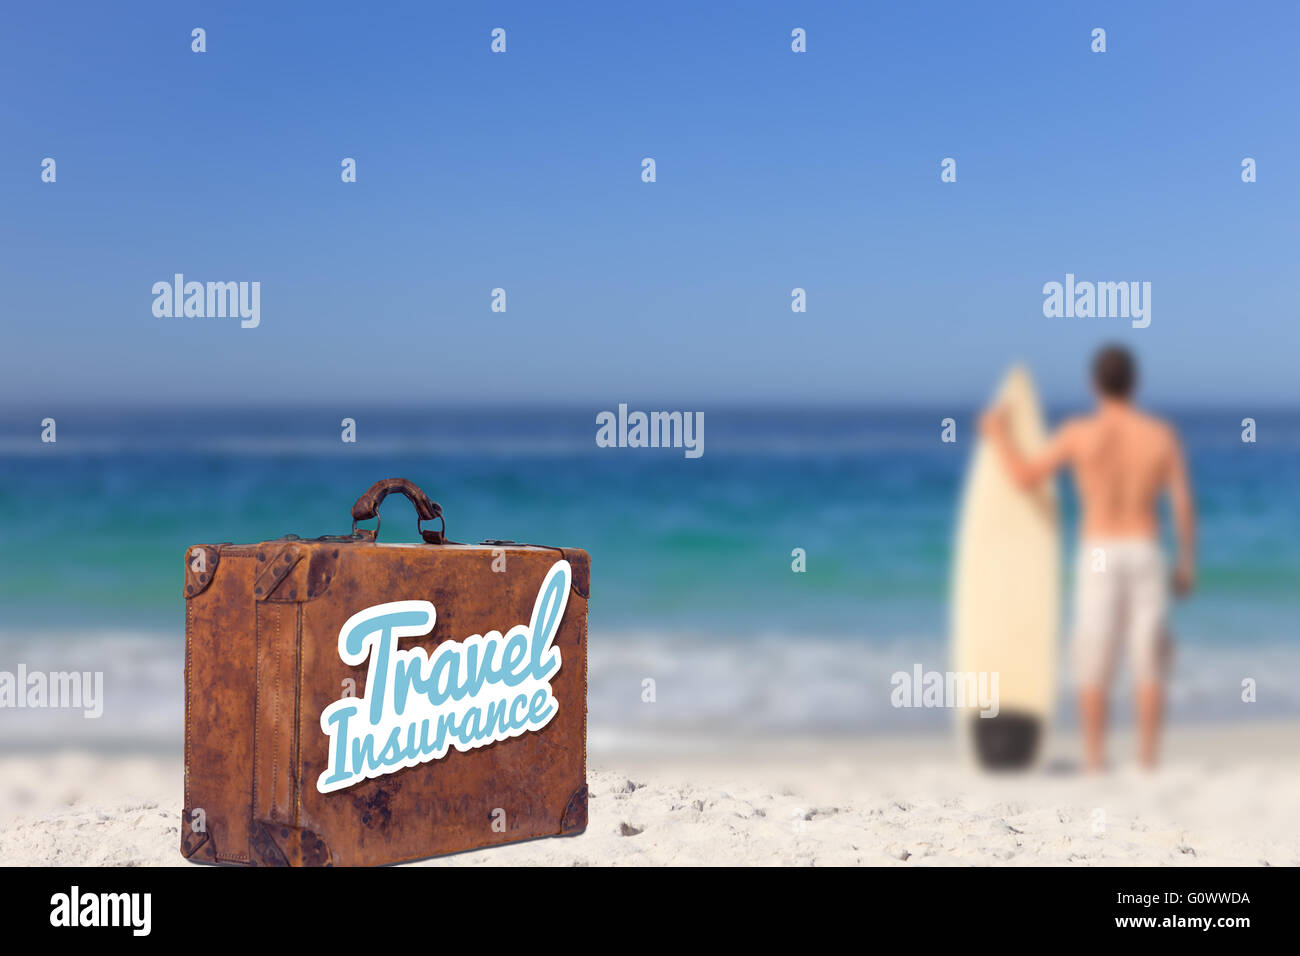 Composite image of travel insurance message on an old suitcase - Stock Image